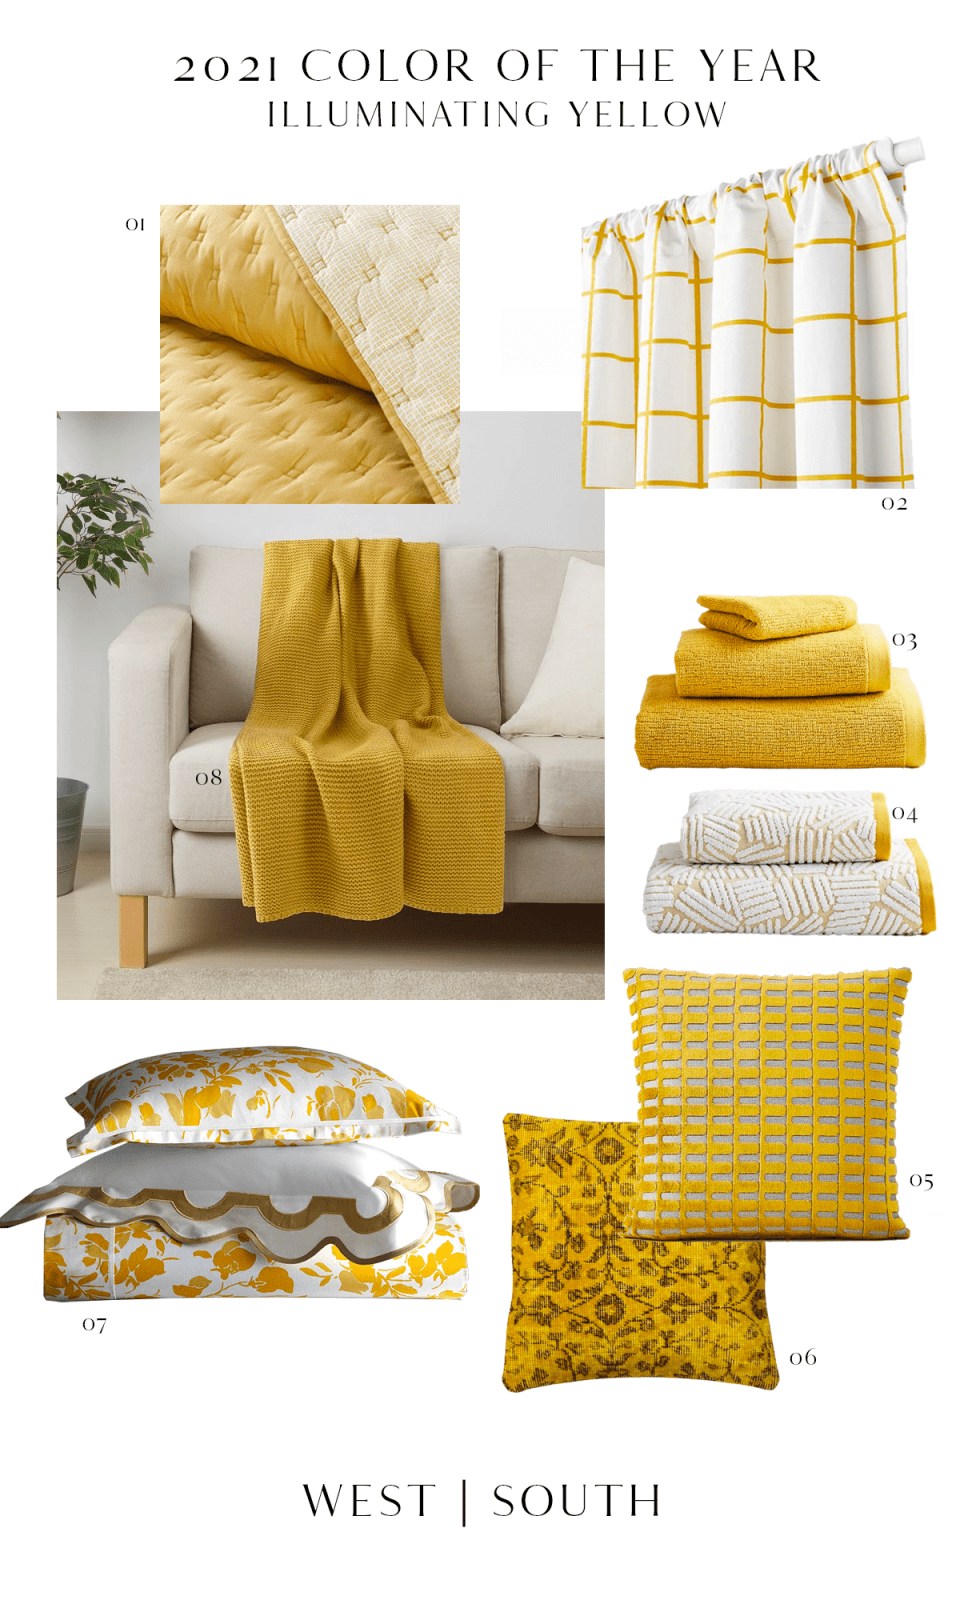 round up image showing yellow bedding curtains blankets towels and pillows